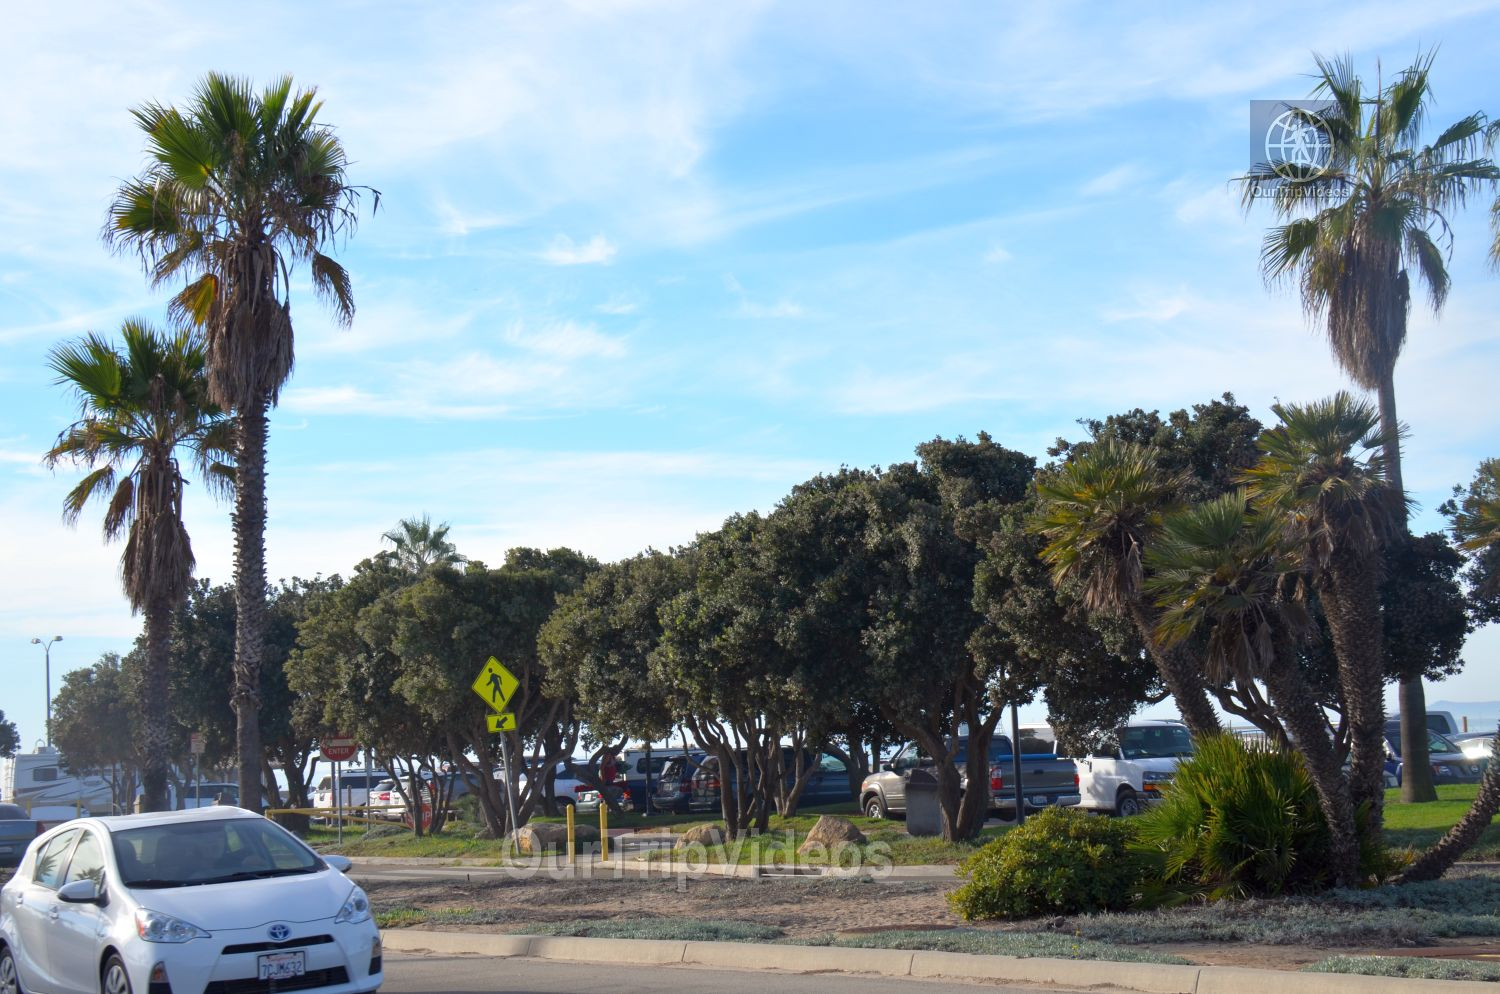 The Robert JL Visitor Center and Harbor cove beach, Ventura, CA, USA - Picture 18 of 25